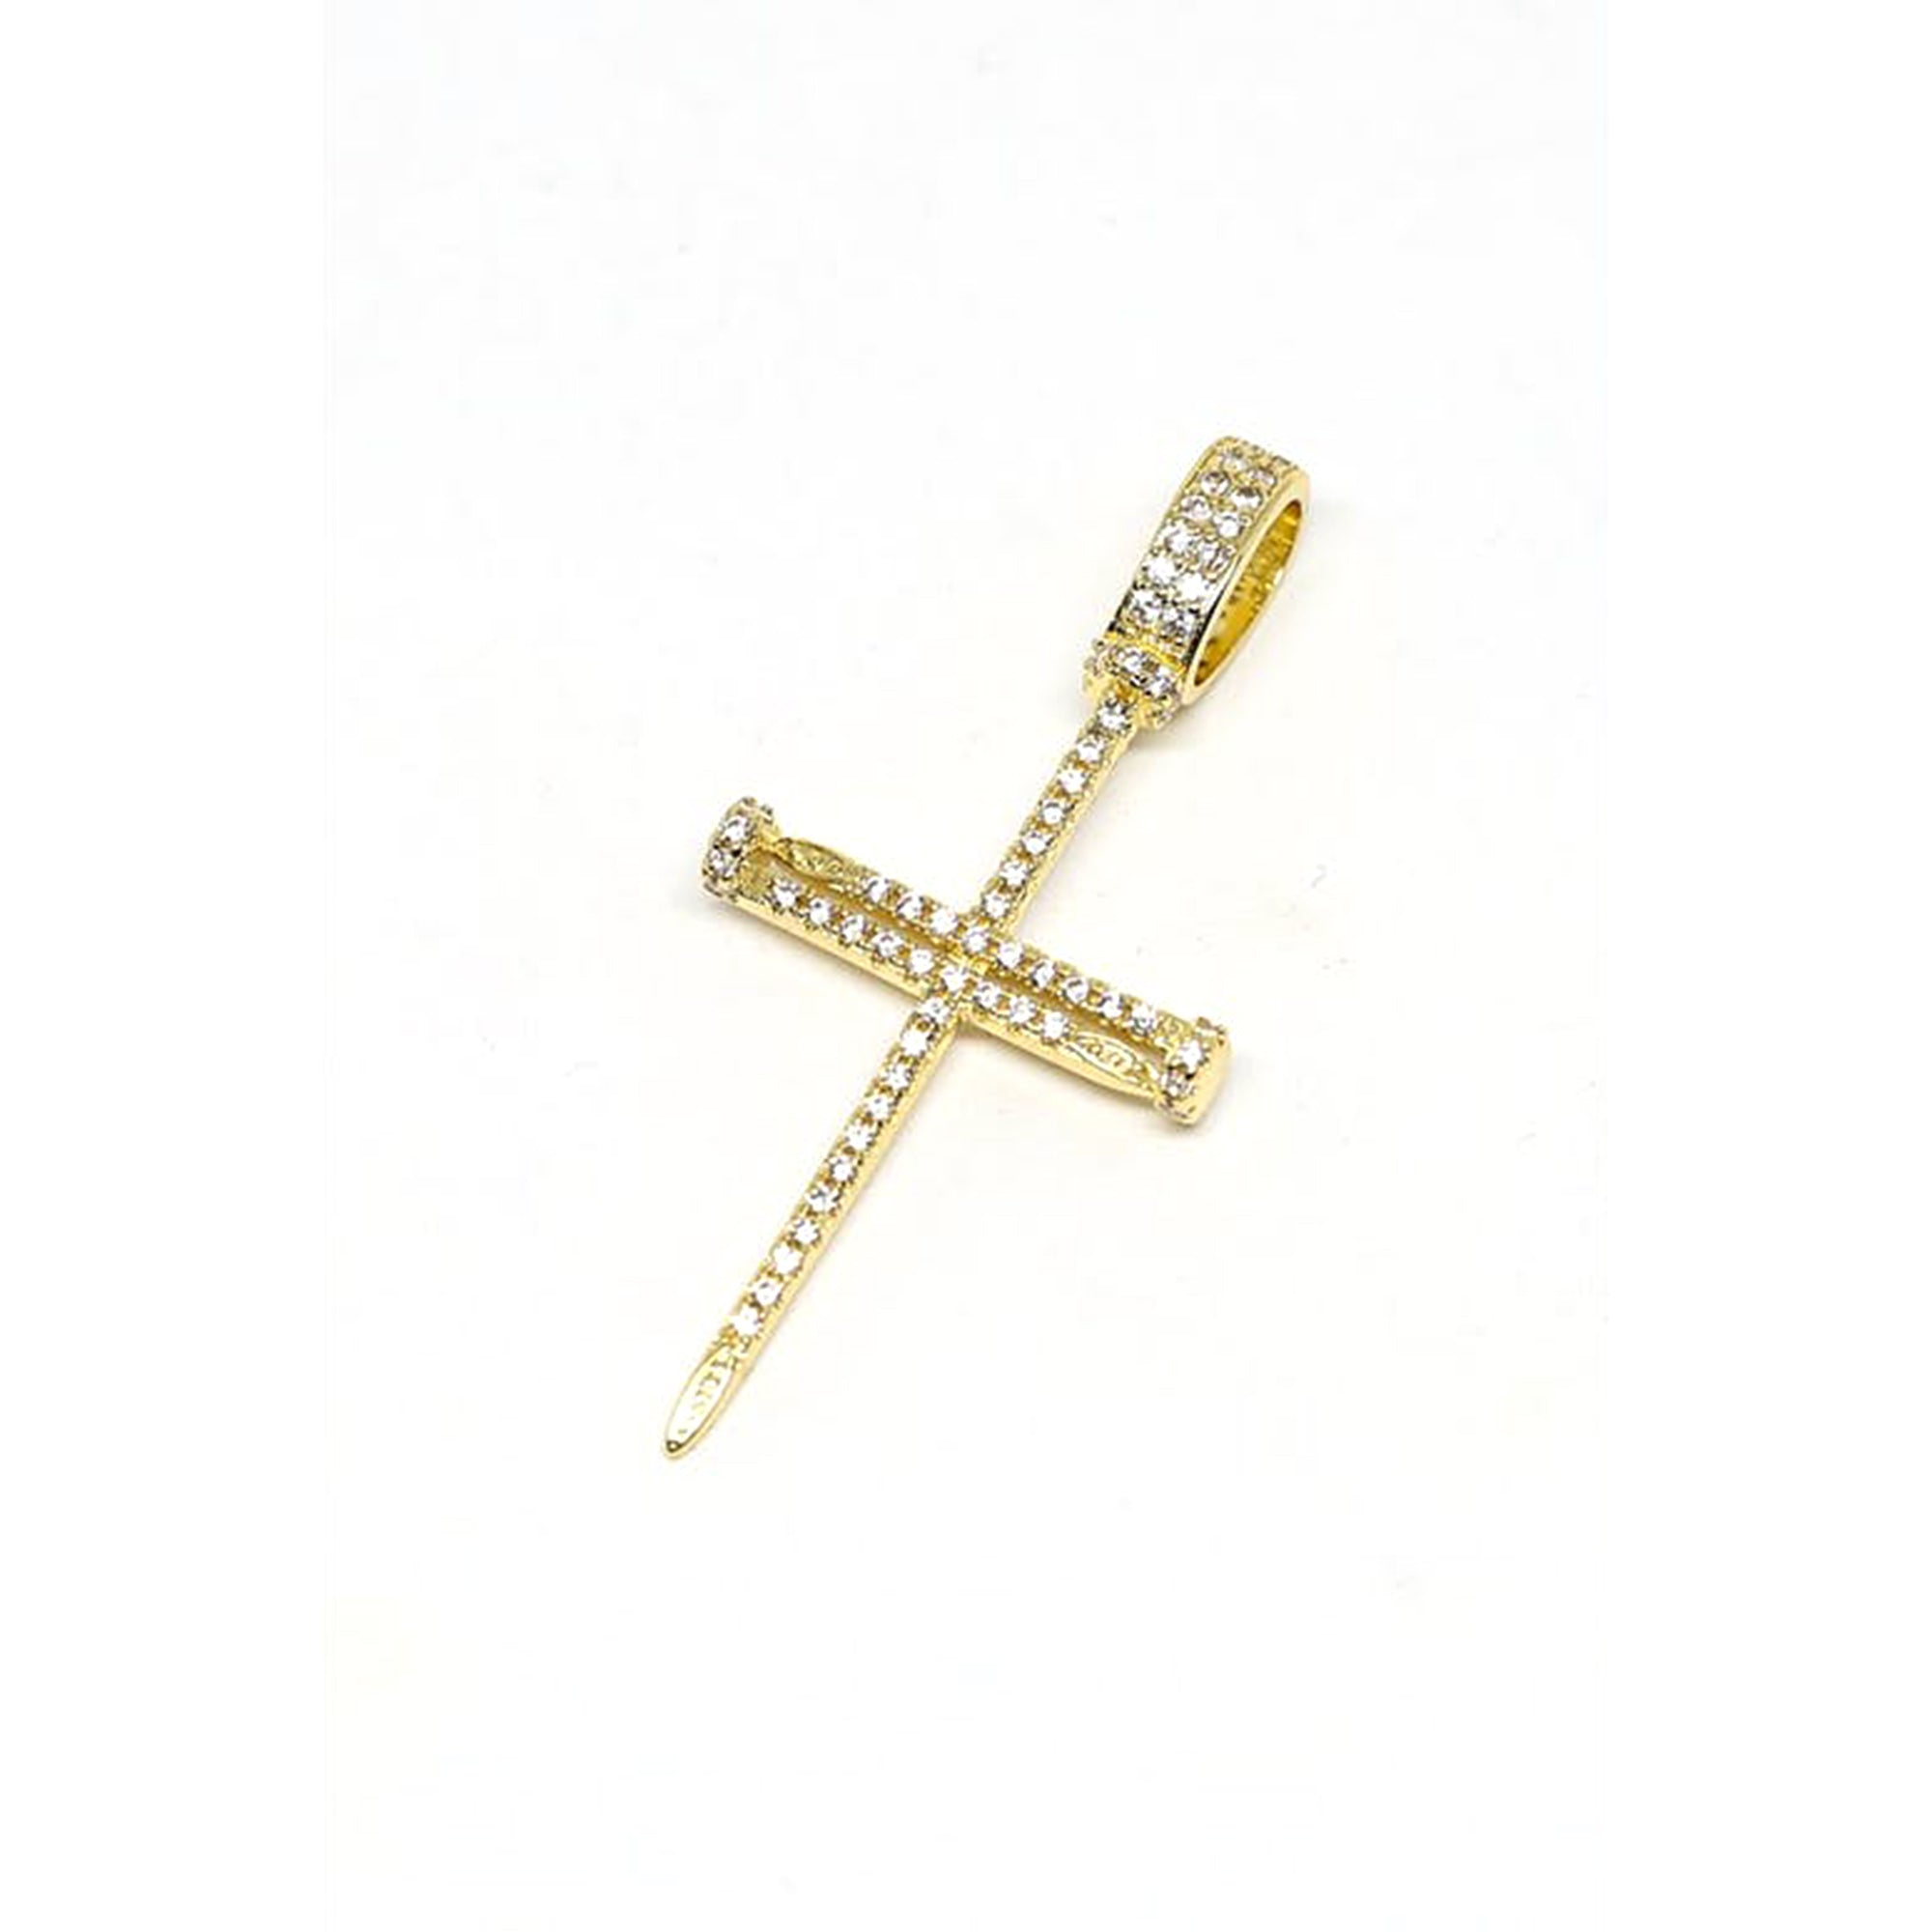 NAIL CROSS PENDANT - 18k Gold Plated with CZ